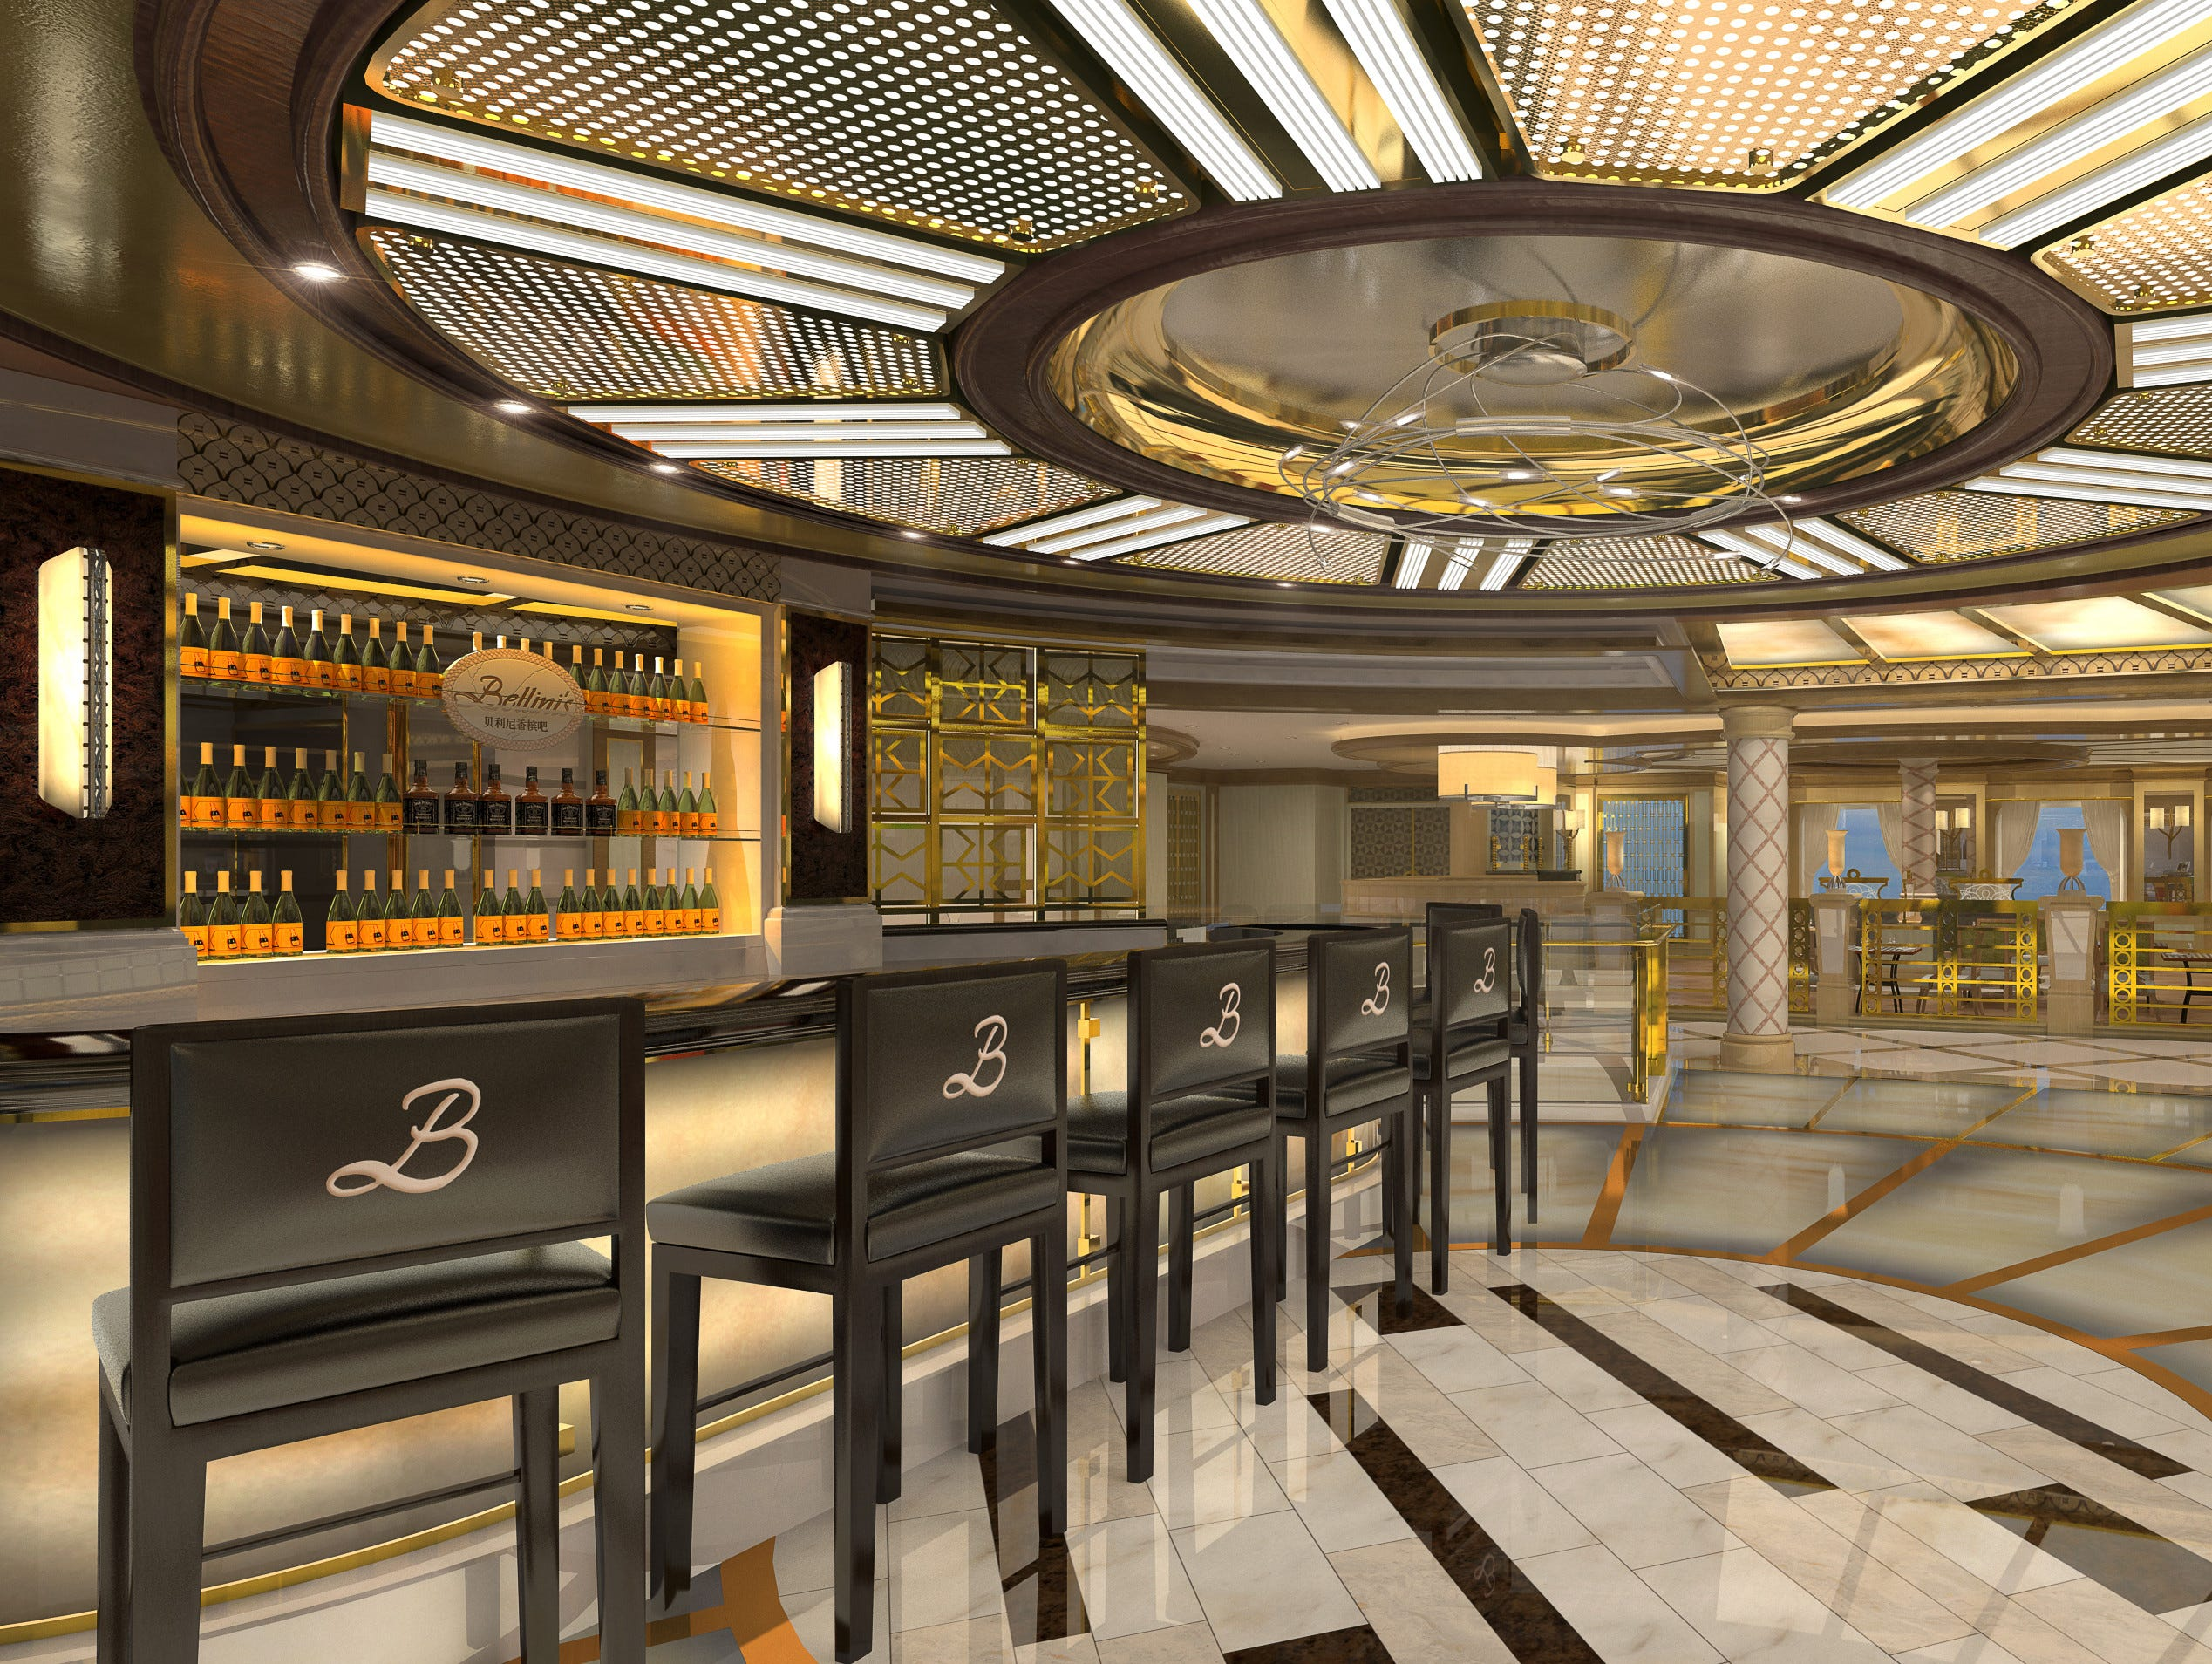 Among bars and cafes found around the Piazza on Sky Princess will be Bellini's.